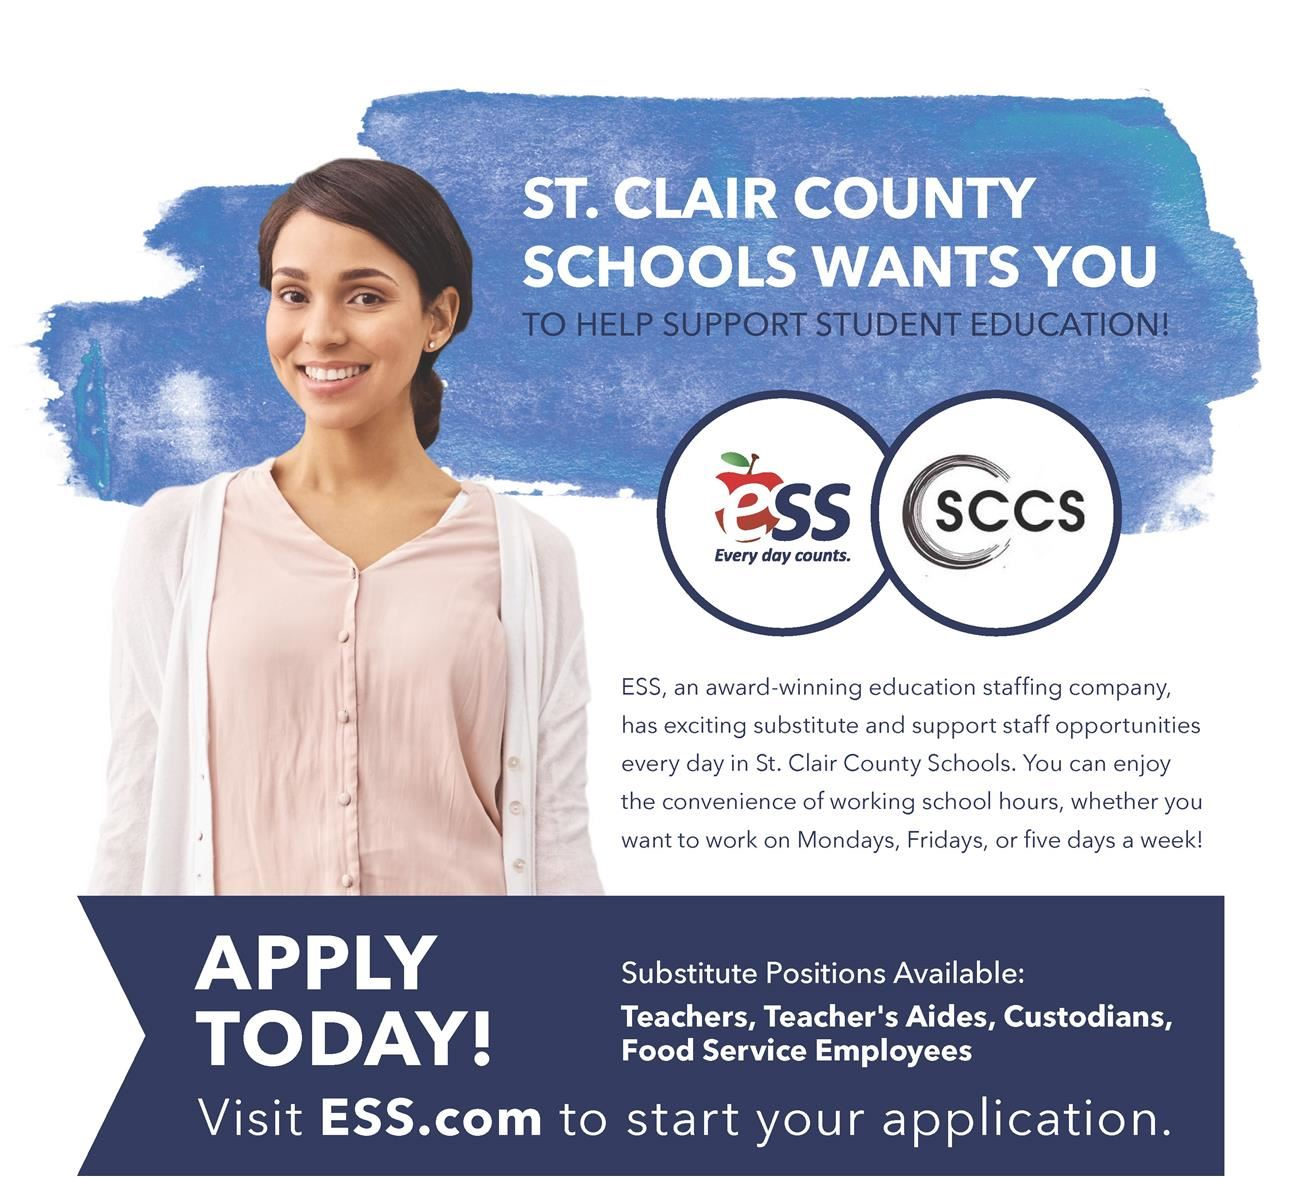 Saint Clair County School Substitute Recruitment Flyer. Contact Jennifer Norman for more info at 2056292841